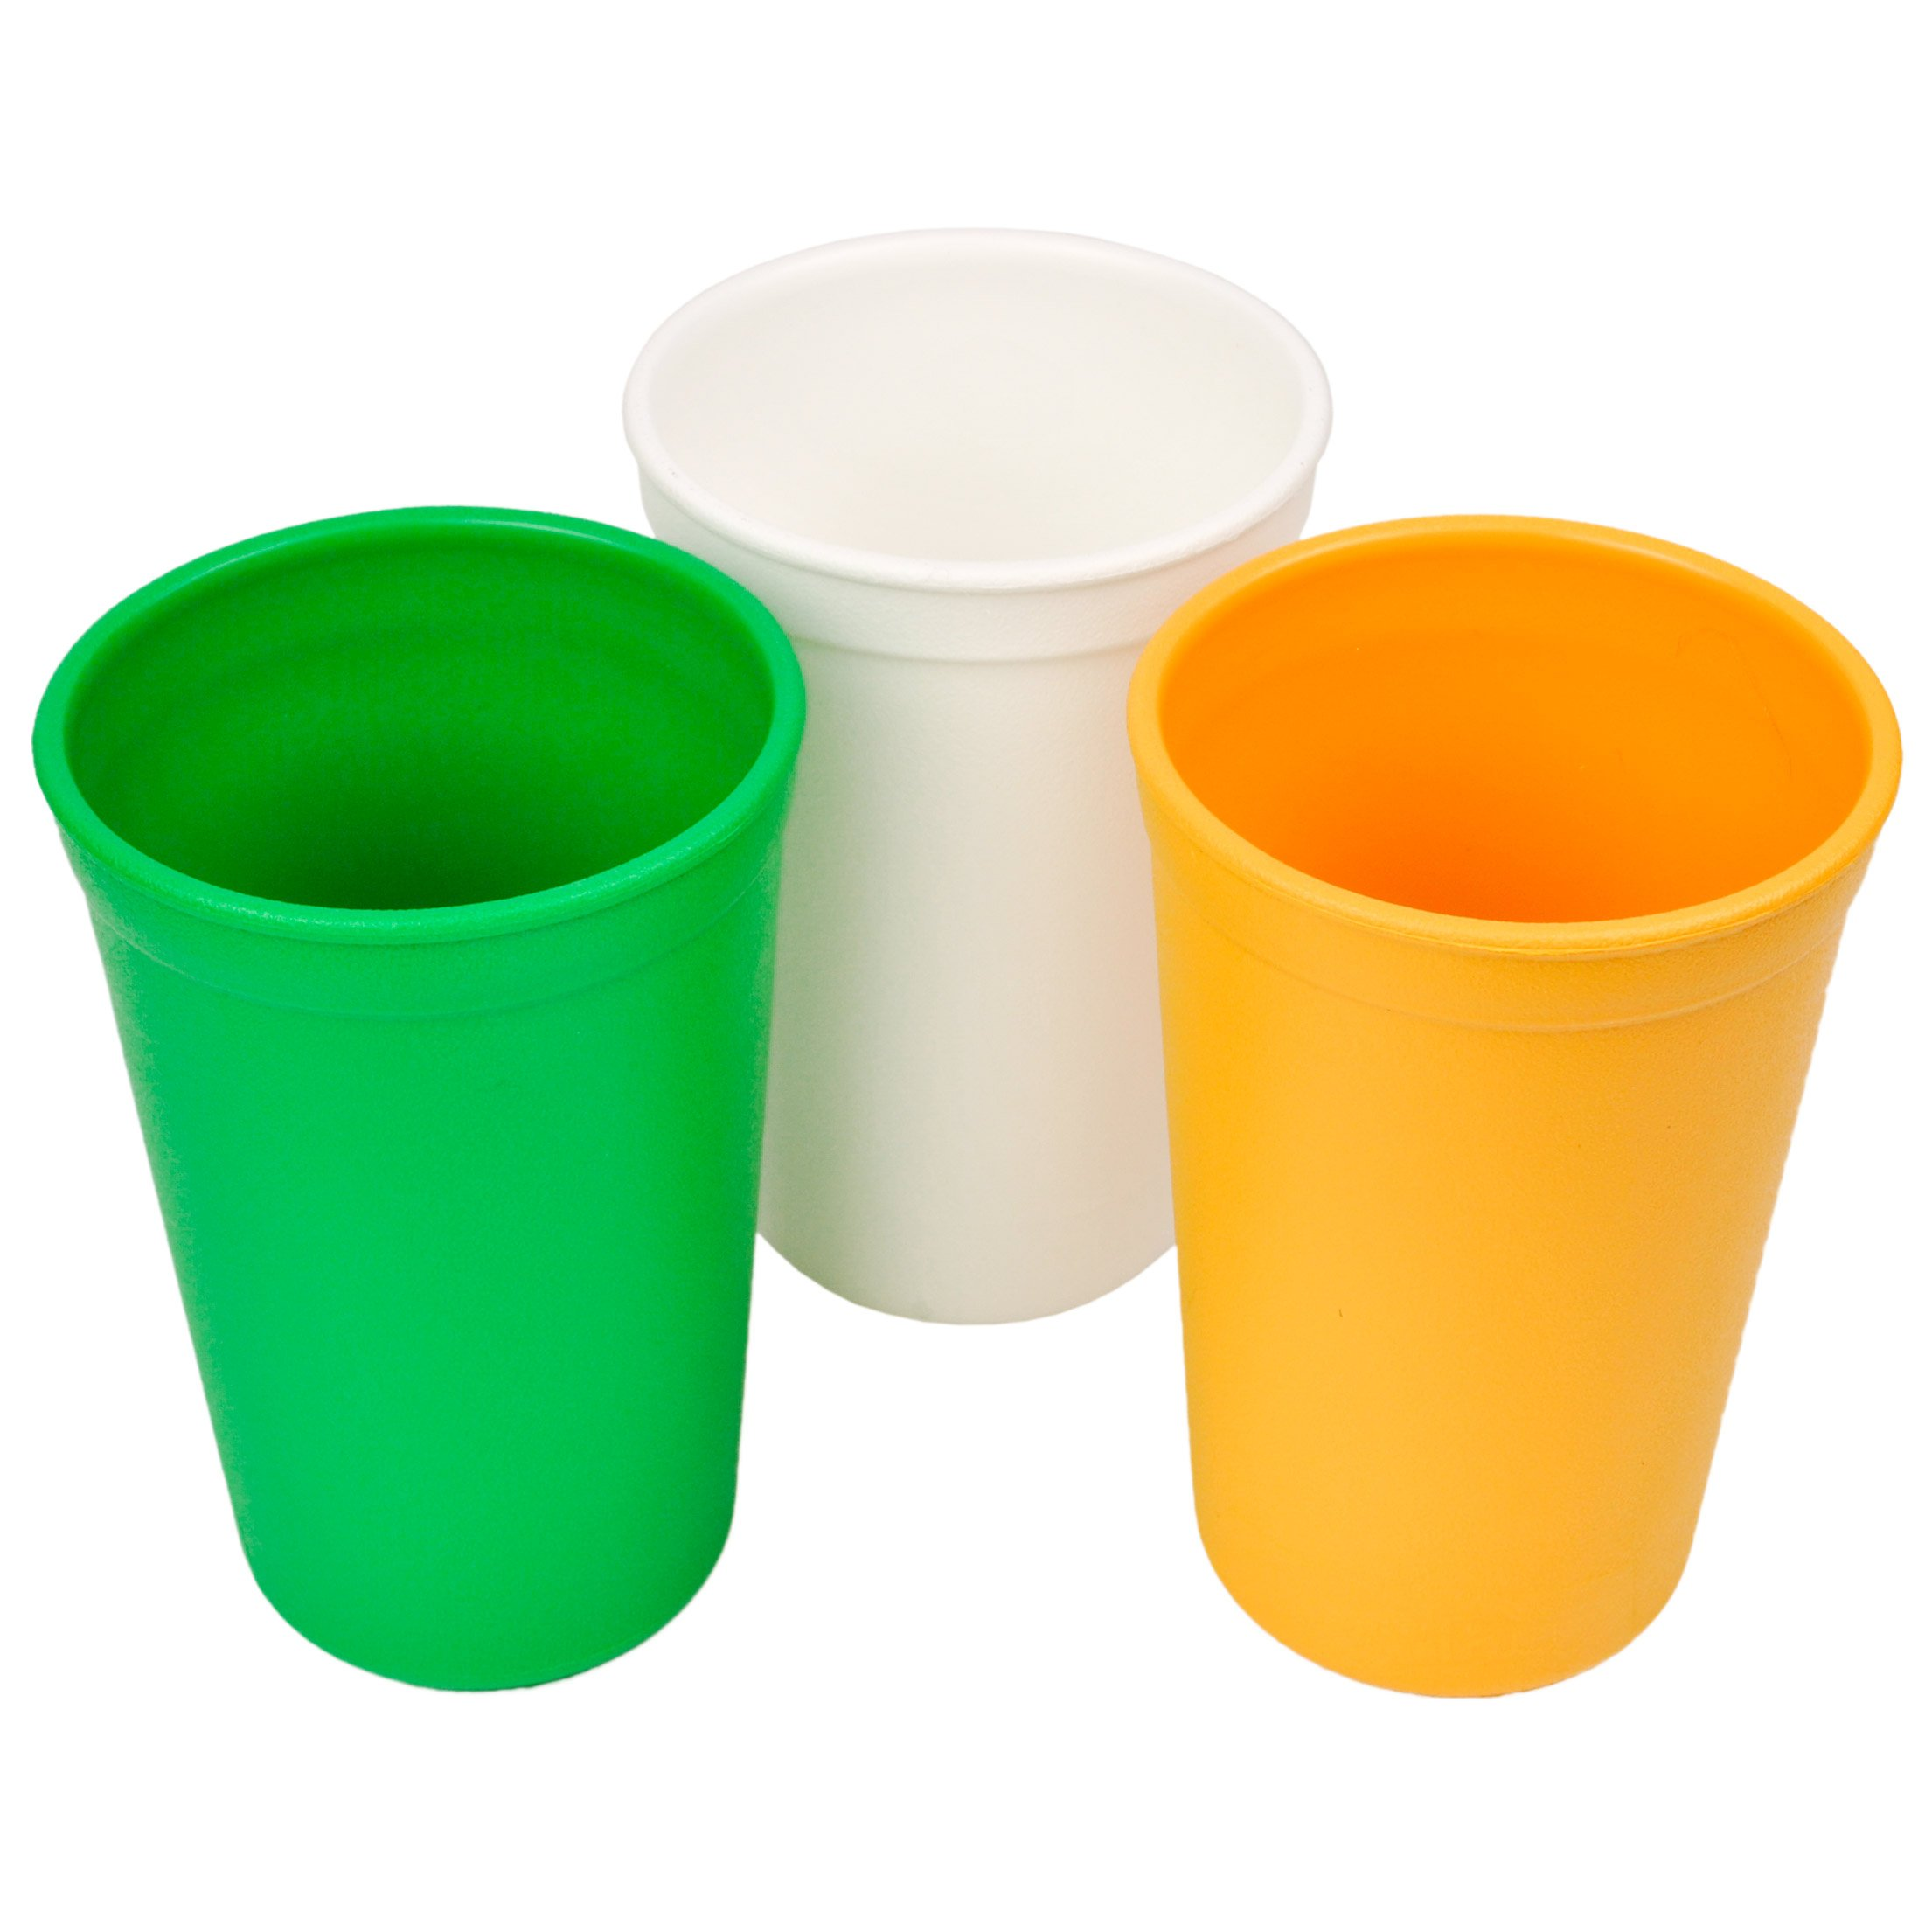 Re-Play 3pk - 9oz. Drinking Cups   Made in USA from Eco Friendly Heavyweight Recycled Milk Jugs - Virtually Indestructible   for All Ages   Kelly Green, White, Sunny Yellow   St. Patrick's Day